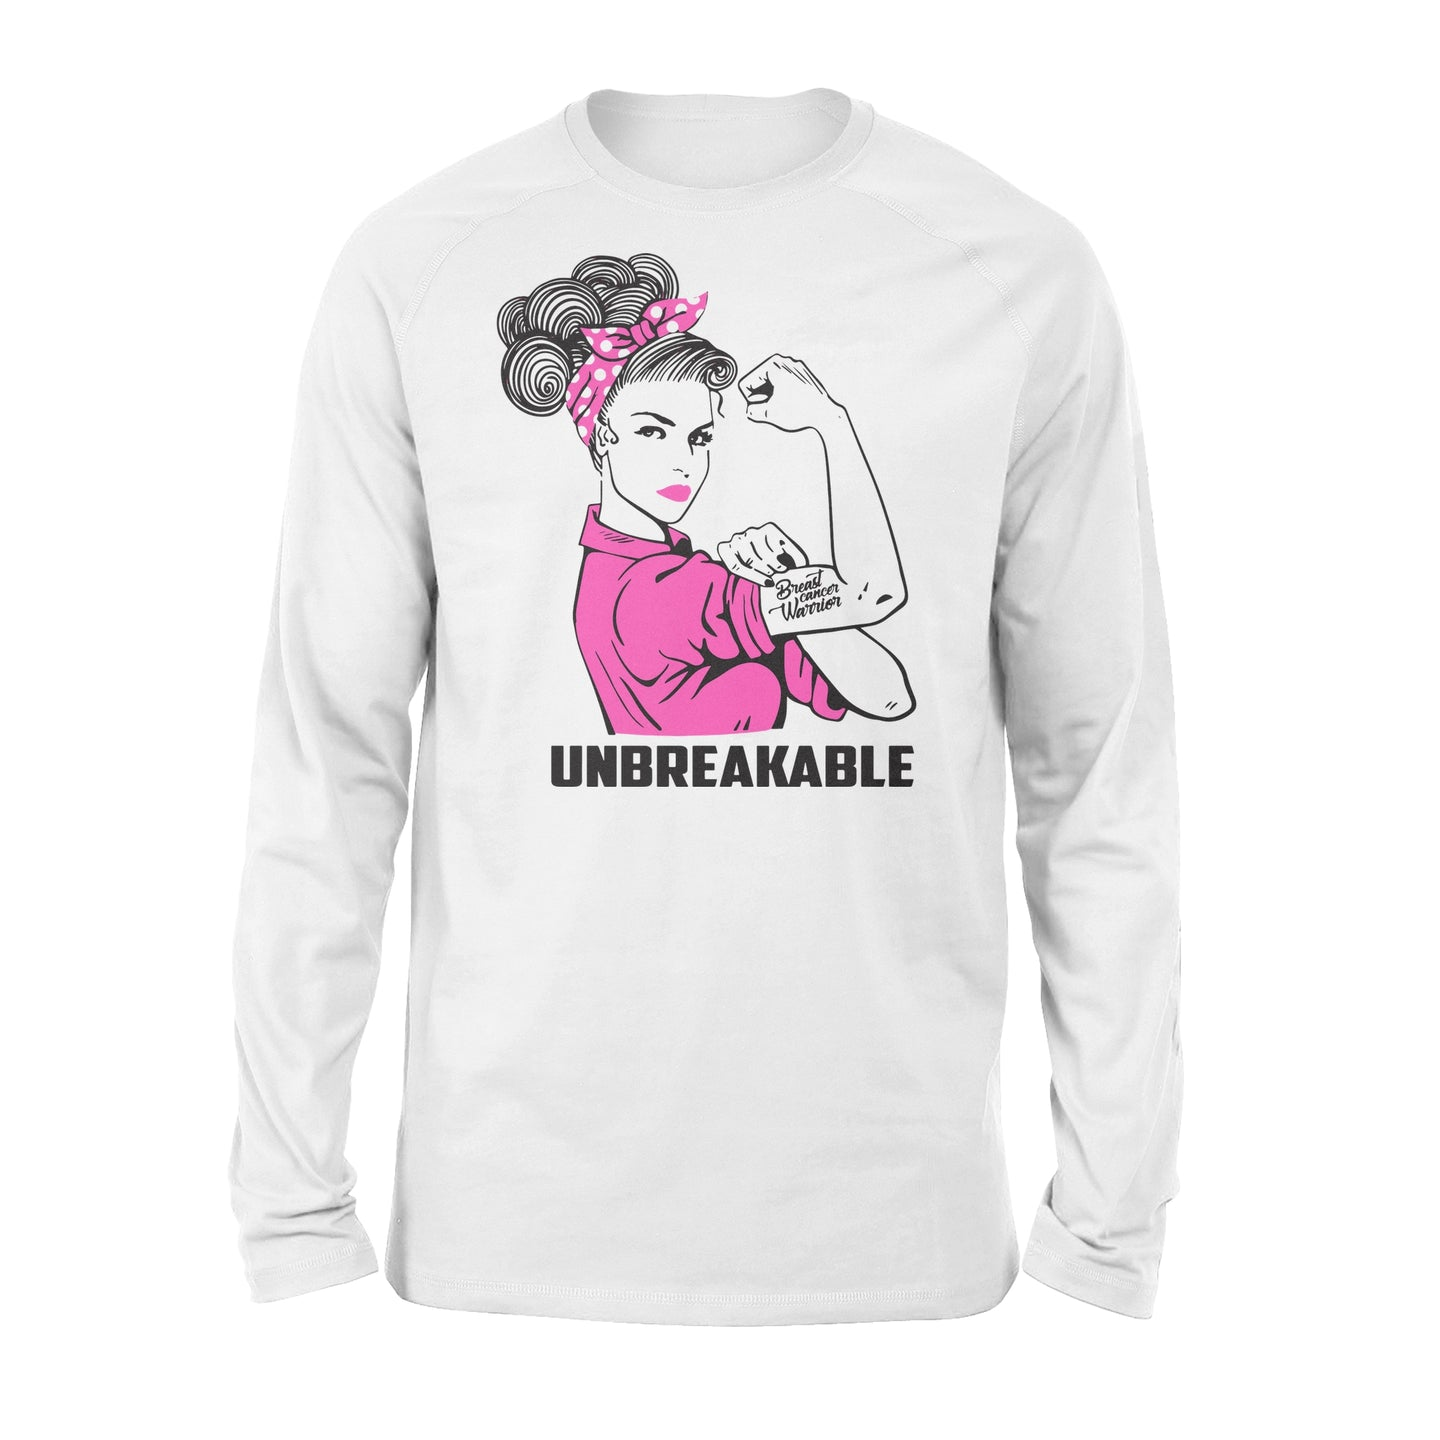 Breast Warrior Unbreakable - Breast Cancer Awareness - Standard Long Sleeve Apparel S / White